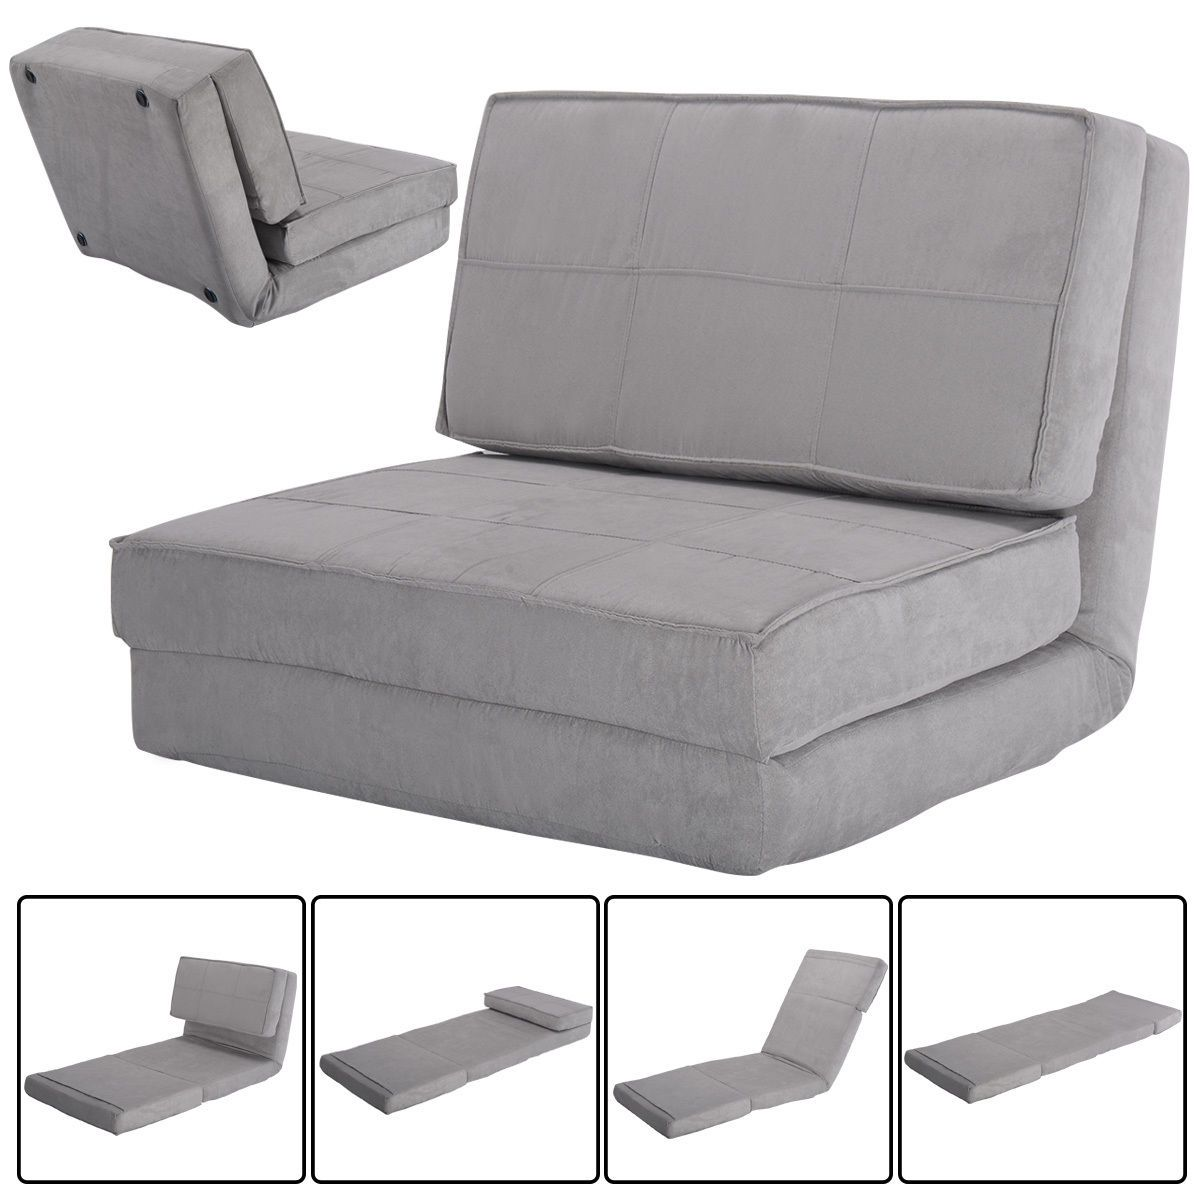 Best Convertible Lounger Folding Sofa Sleeper Bed Folding 400 x 300